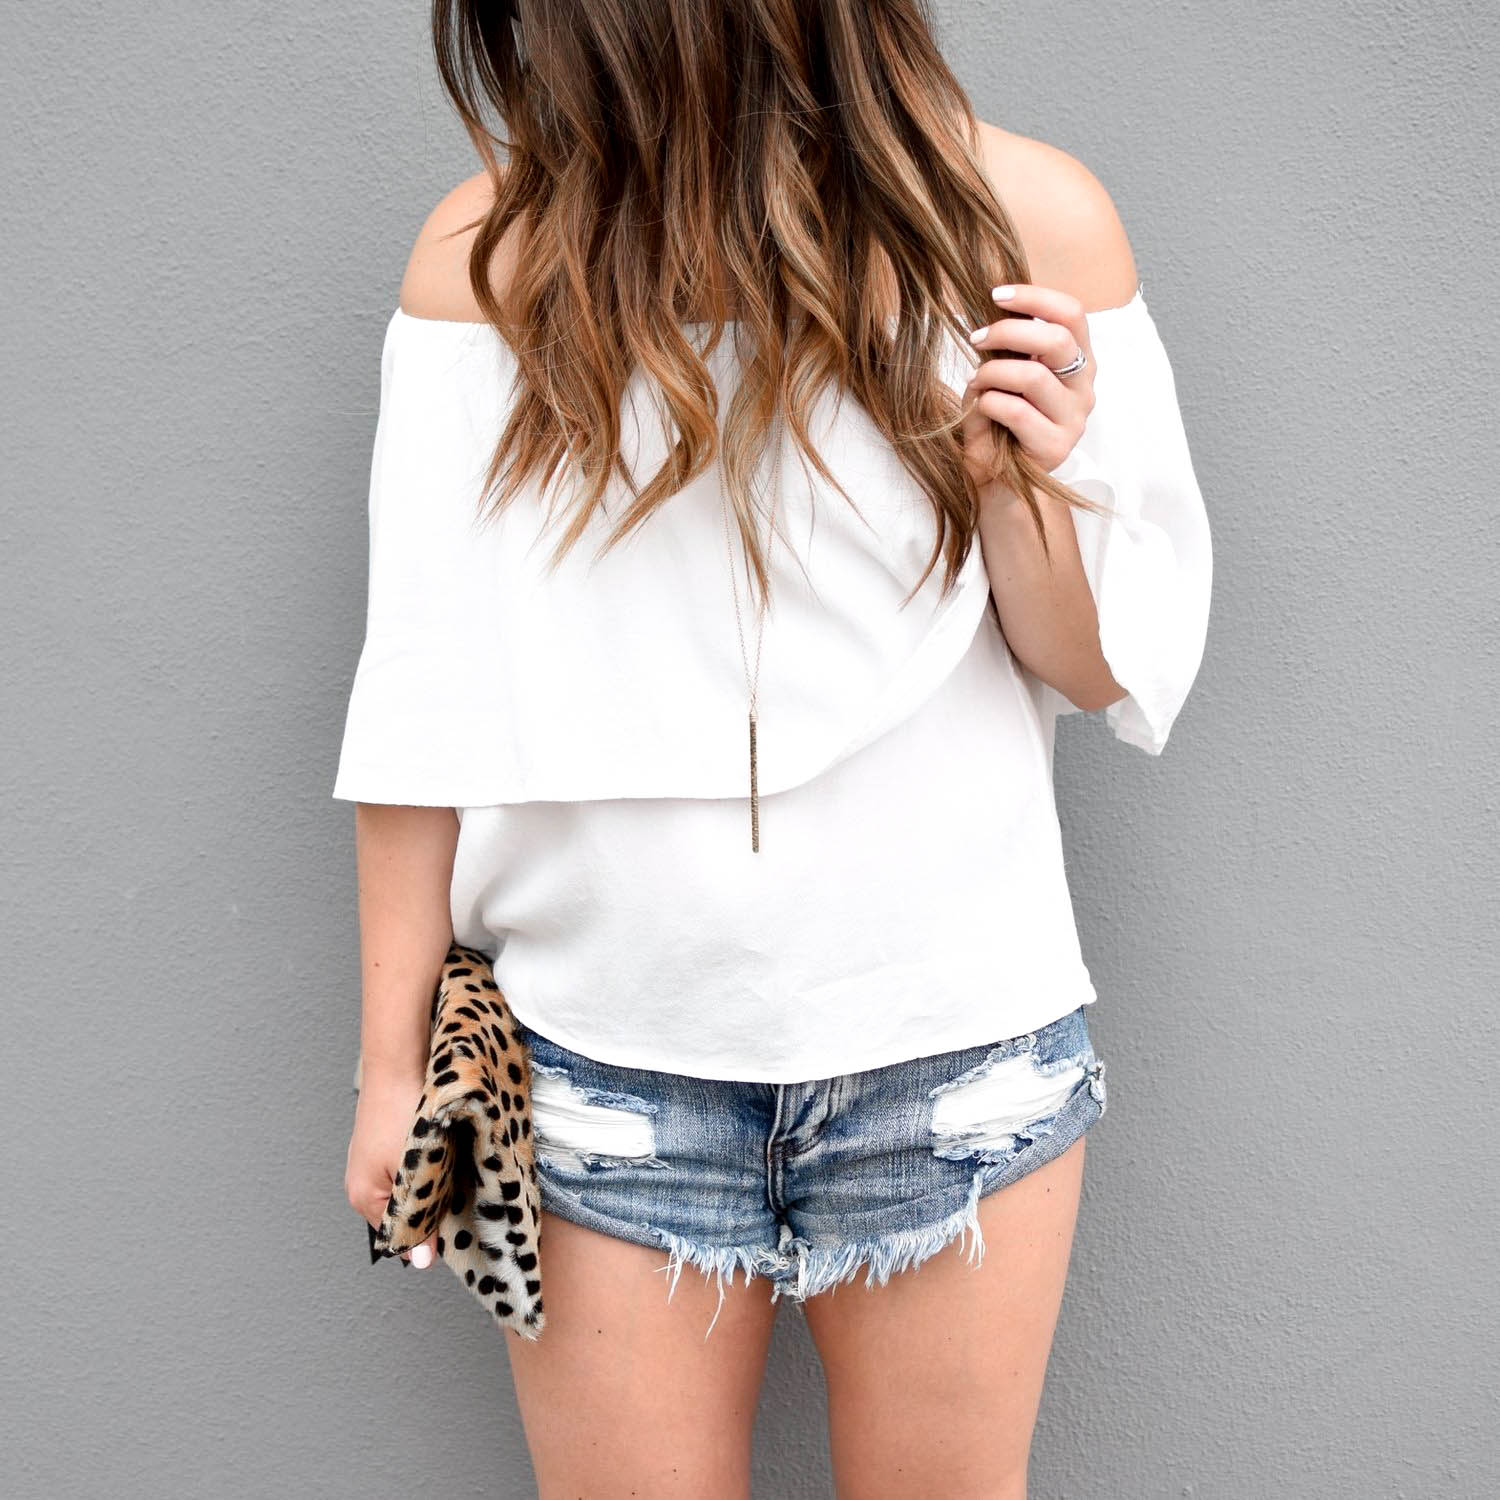 summer outfit idea / white off the shoulder top / summer outfit inspiration / denim cutoff shorts